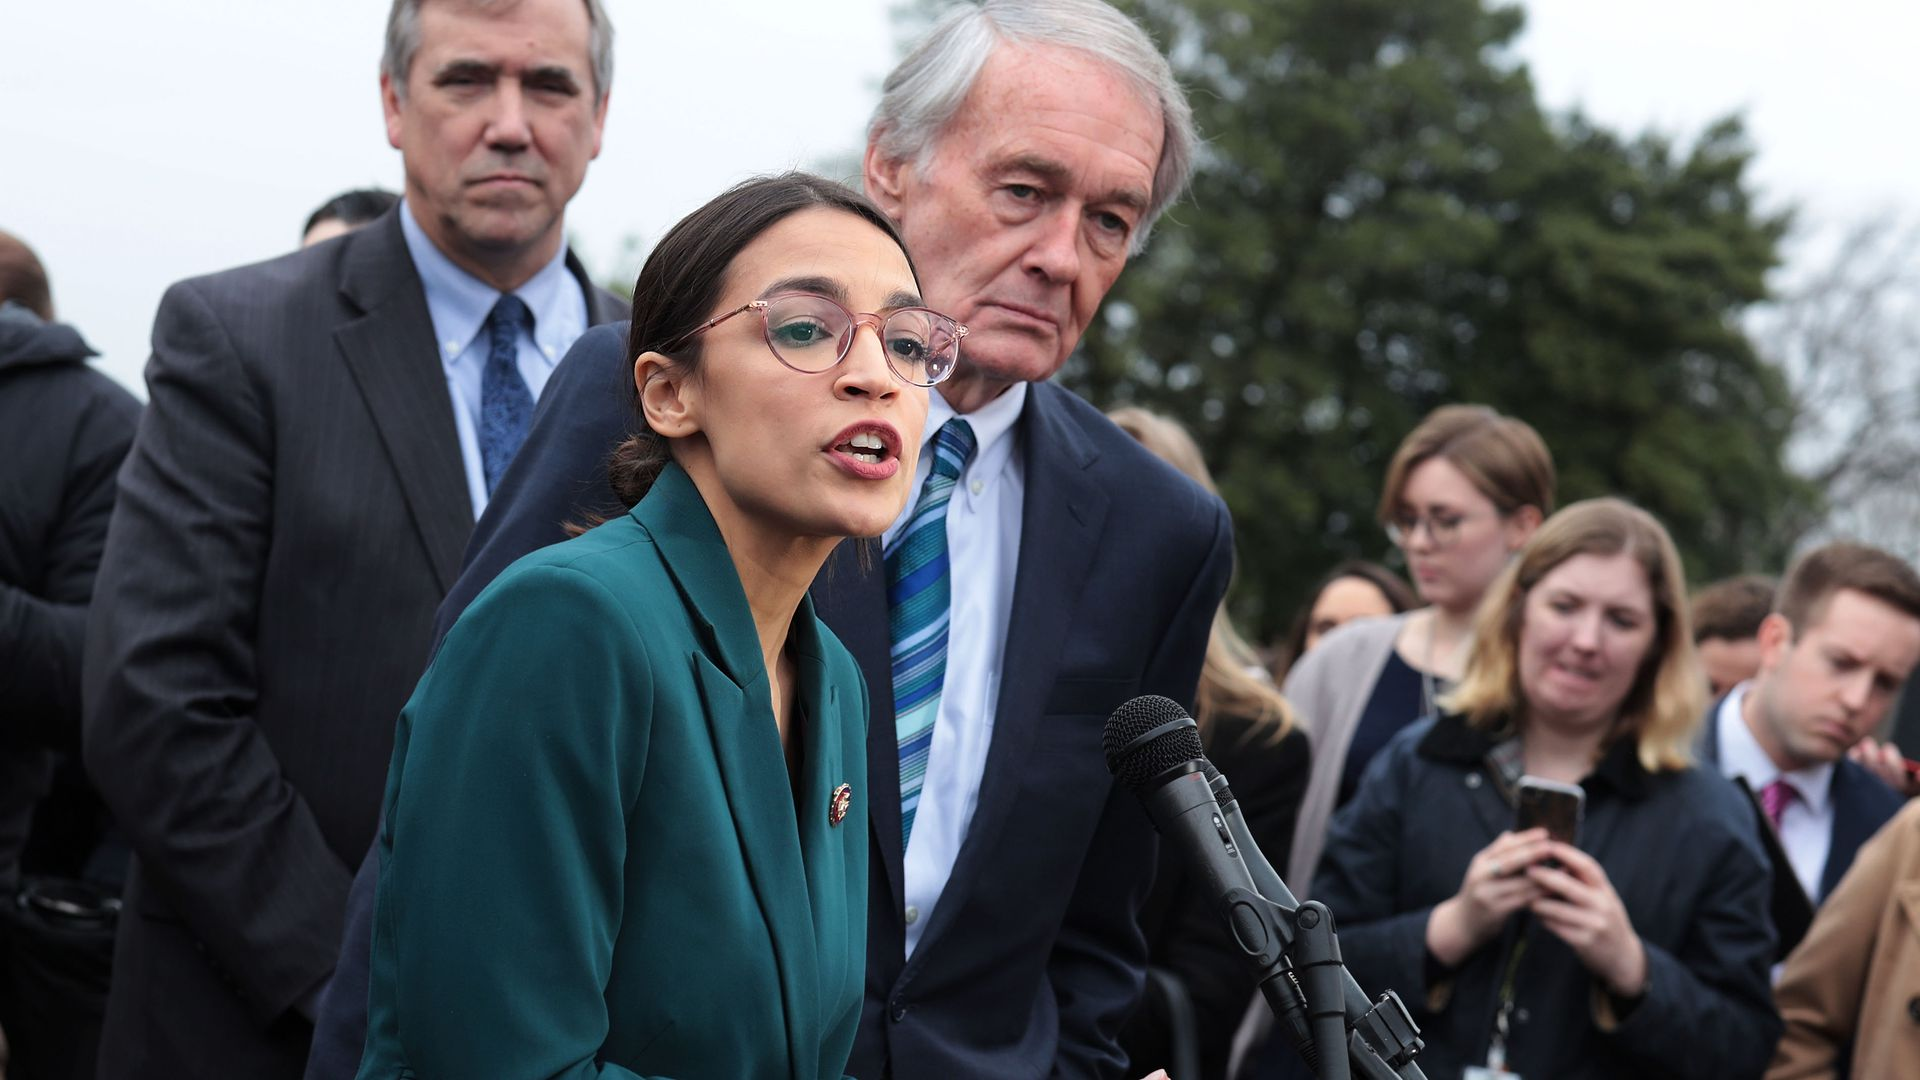 U.S. Rep. Alexandria Ocasio-Cortez (D-NY) speaks as Sen. Ed Markey (D-MA) (R) listens during a news conference